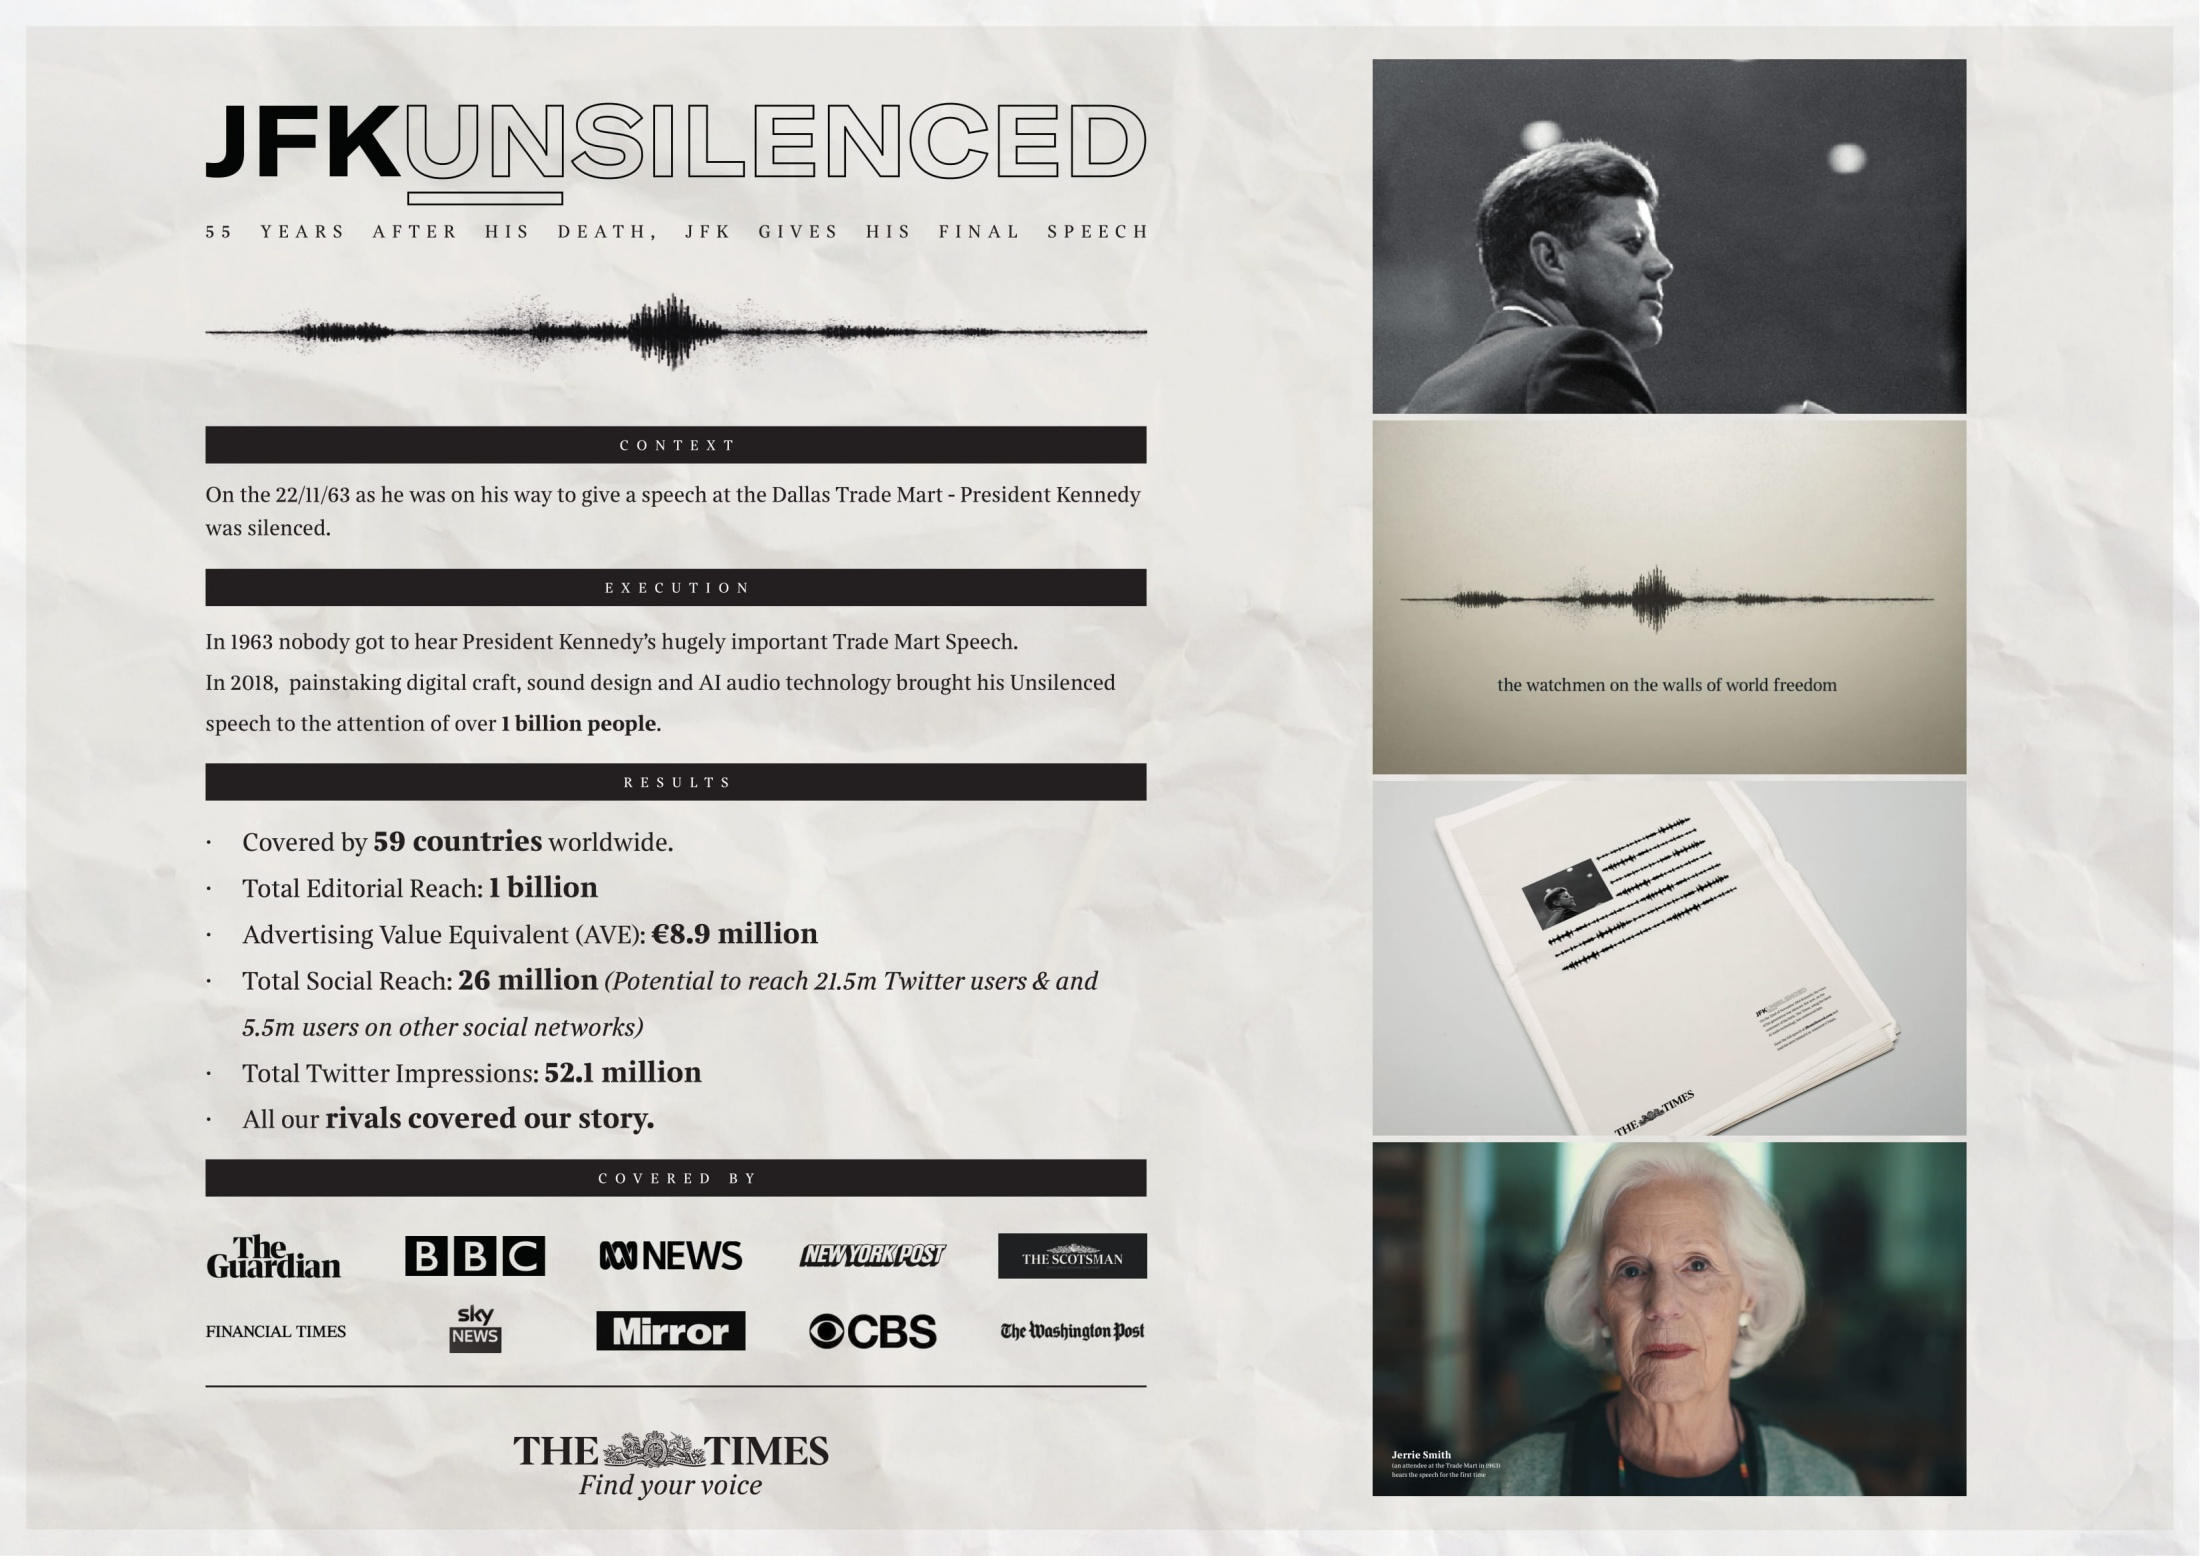 Image Media for JFKunsilenced